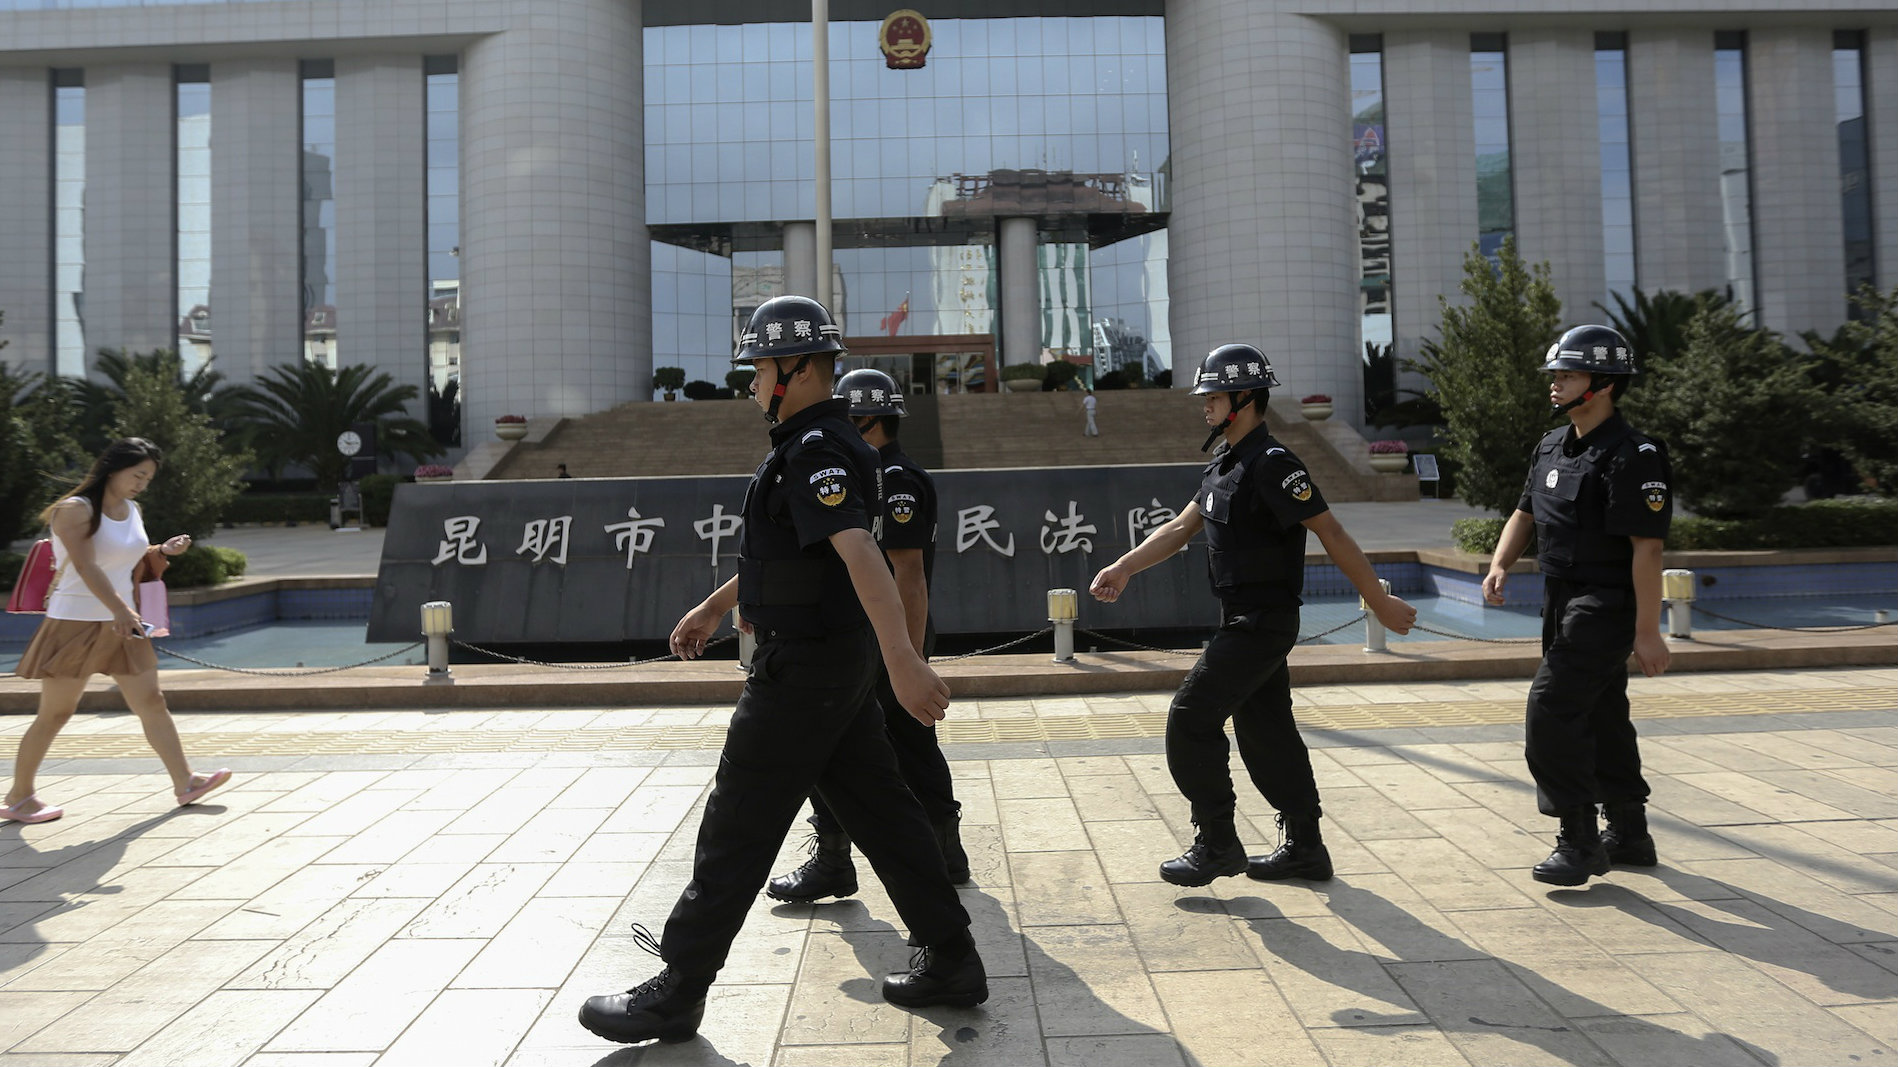 Security in front of a court house in China's Yunnan province